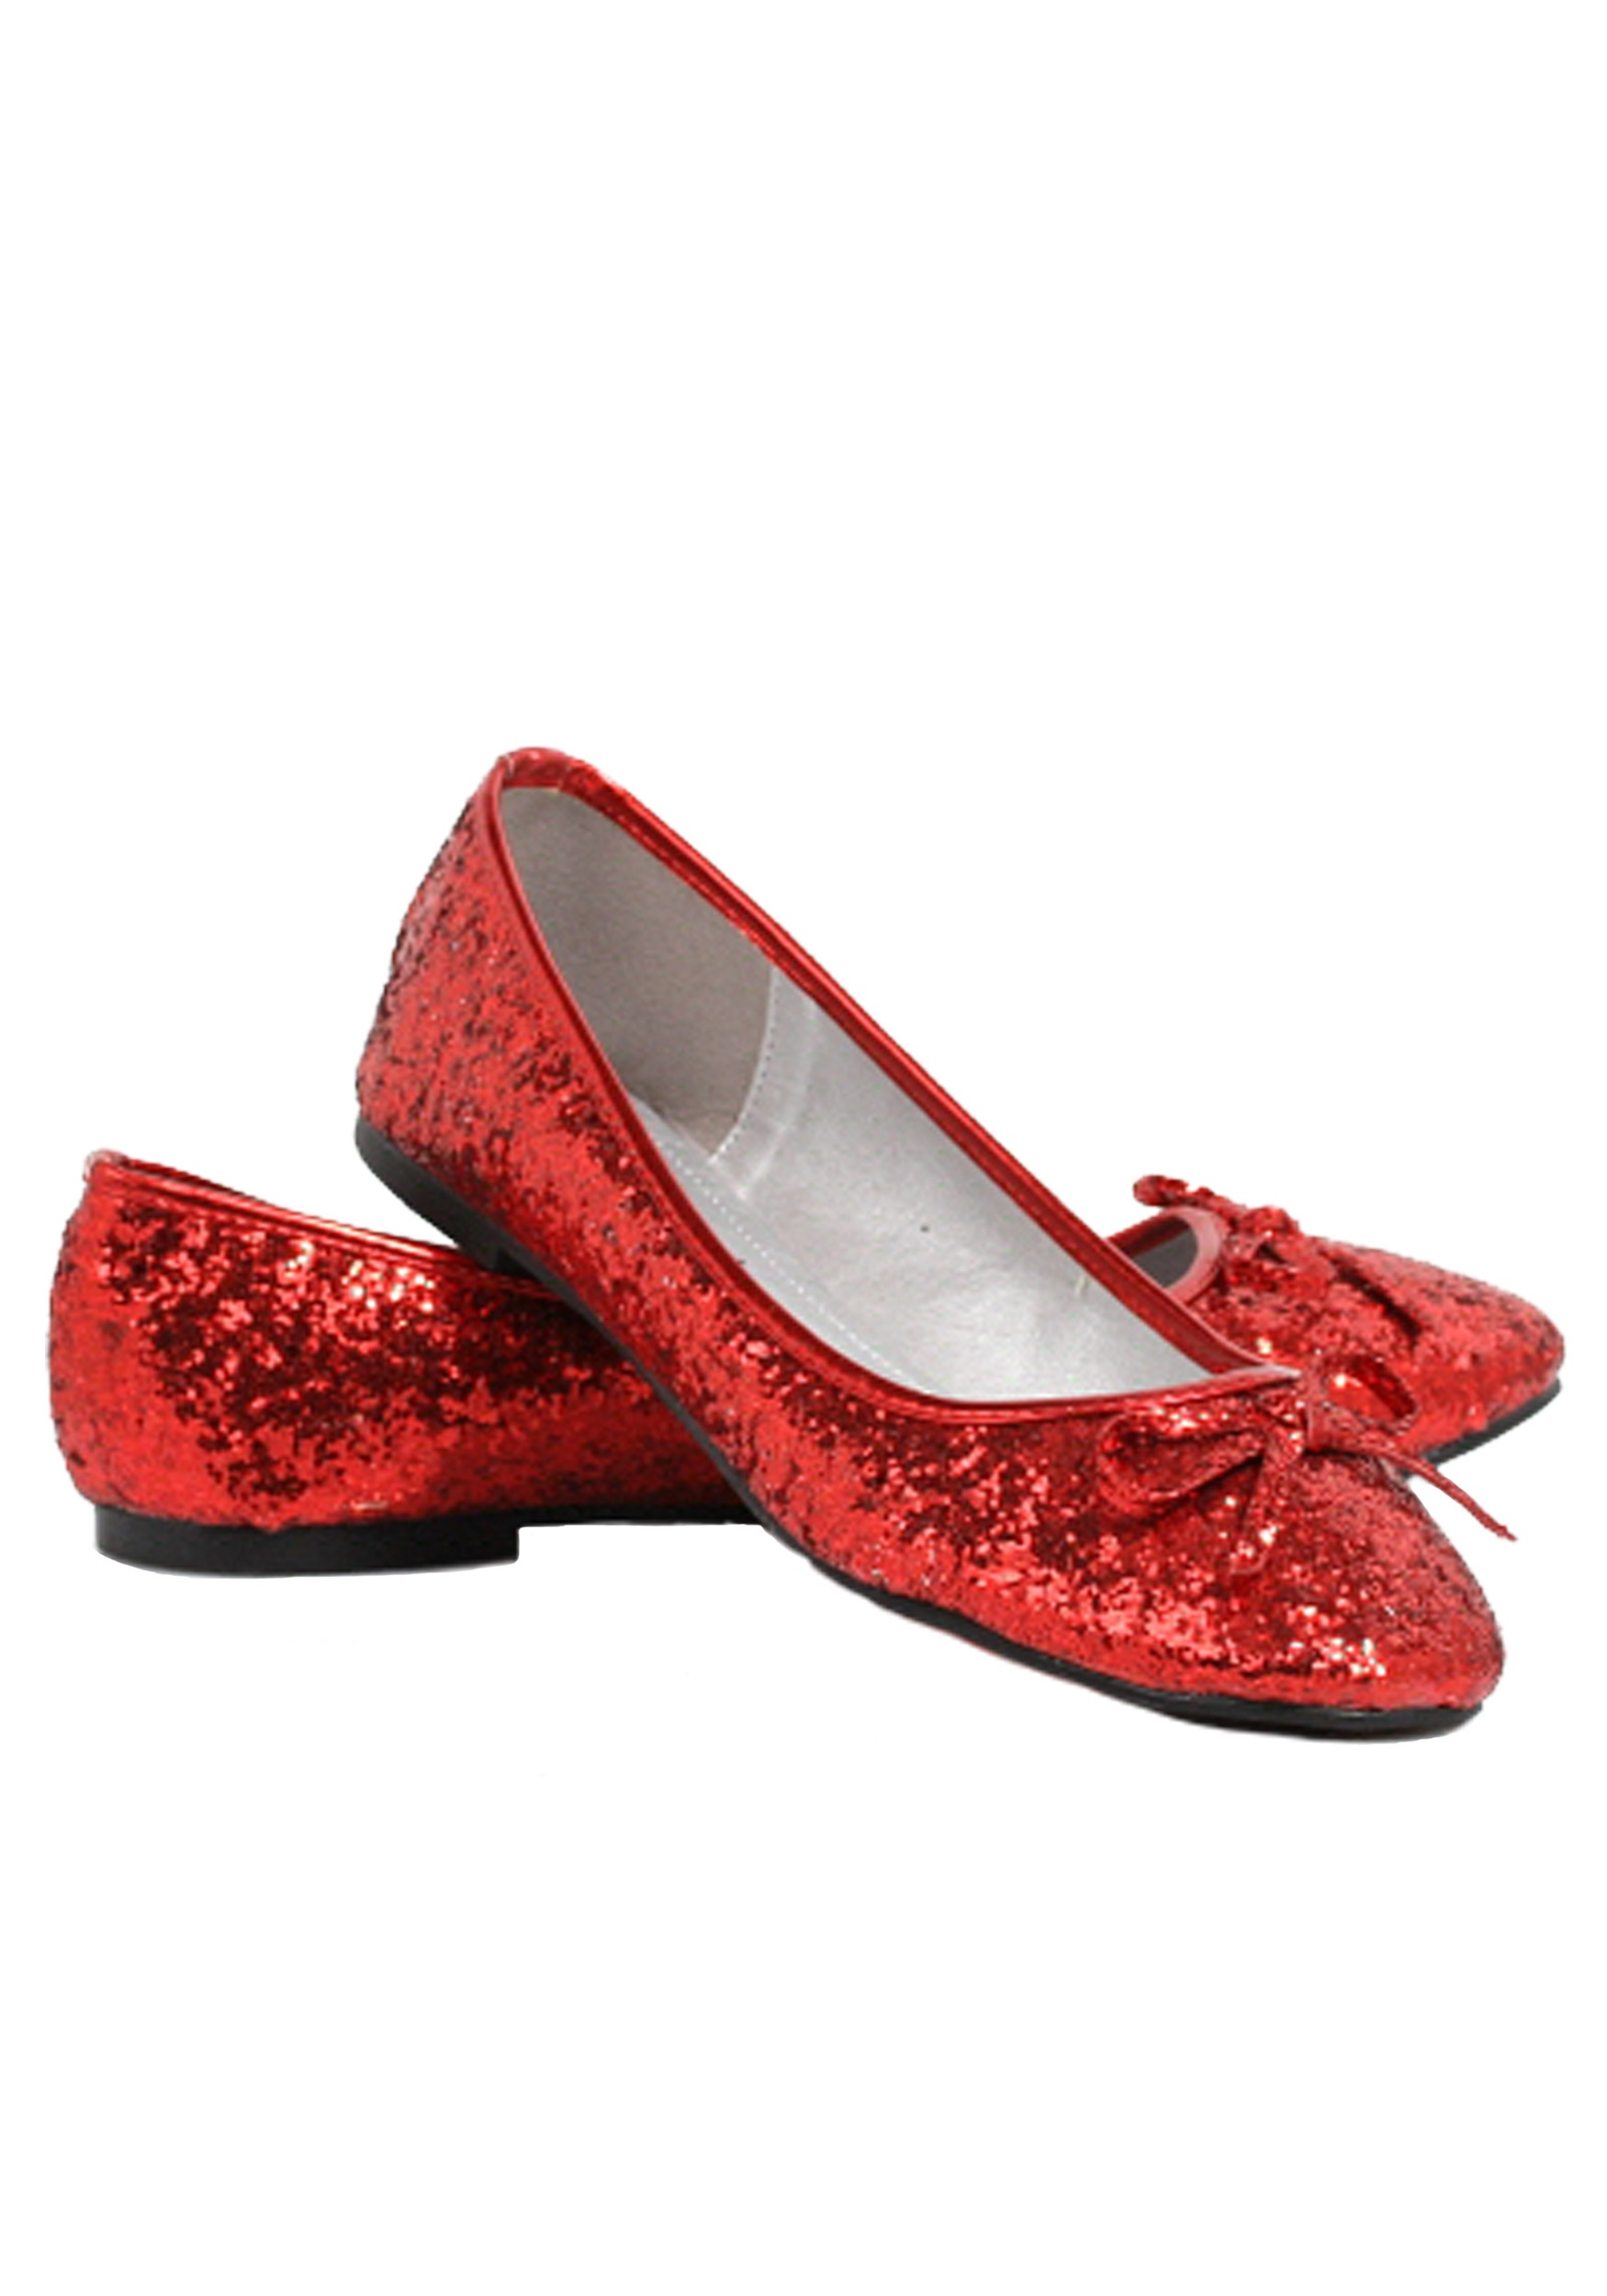 Shop for your next pair of Red Glitter shoes on Zazzle. Order some of our sneakers, or slip your feet into a pair of our flip flops.